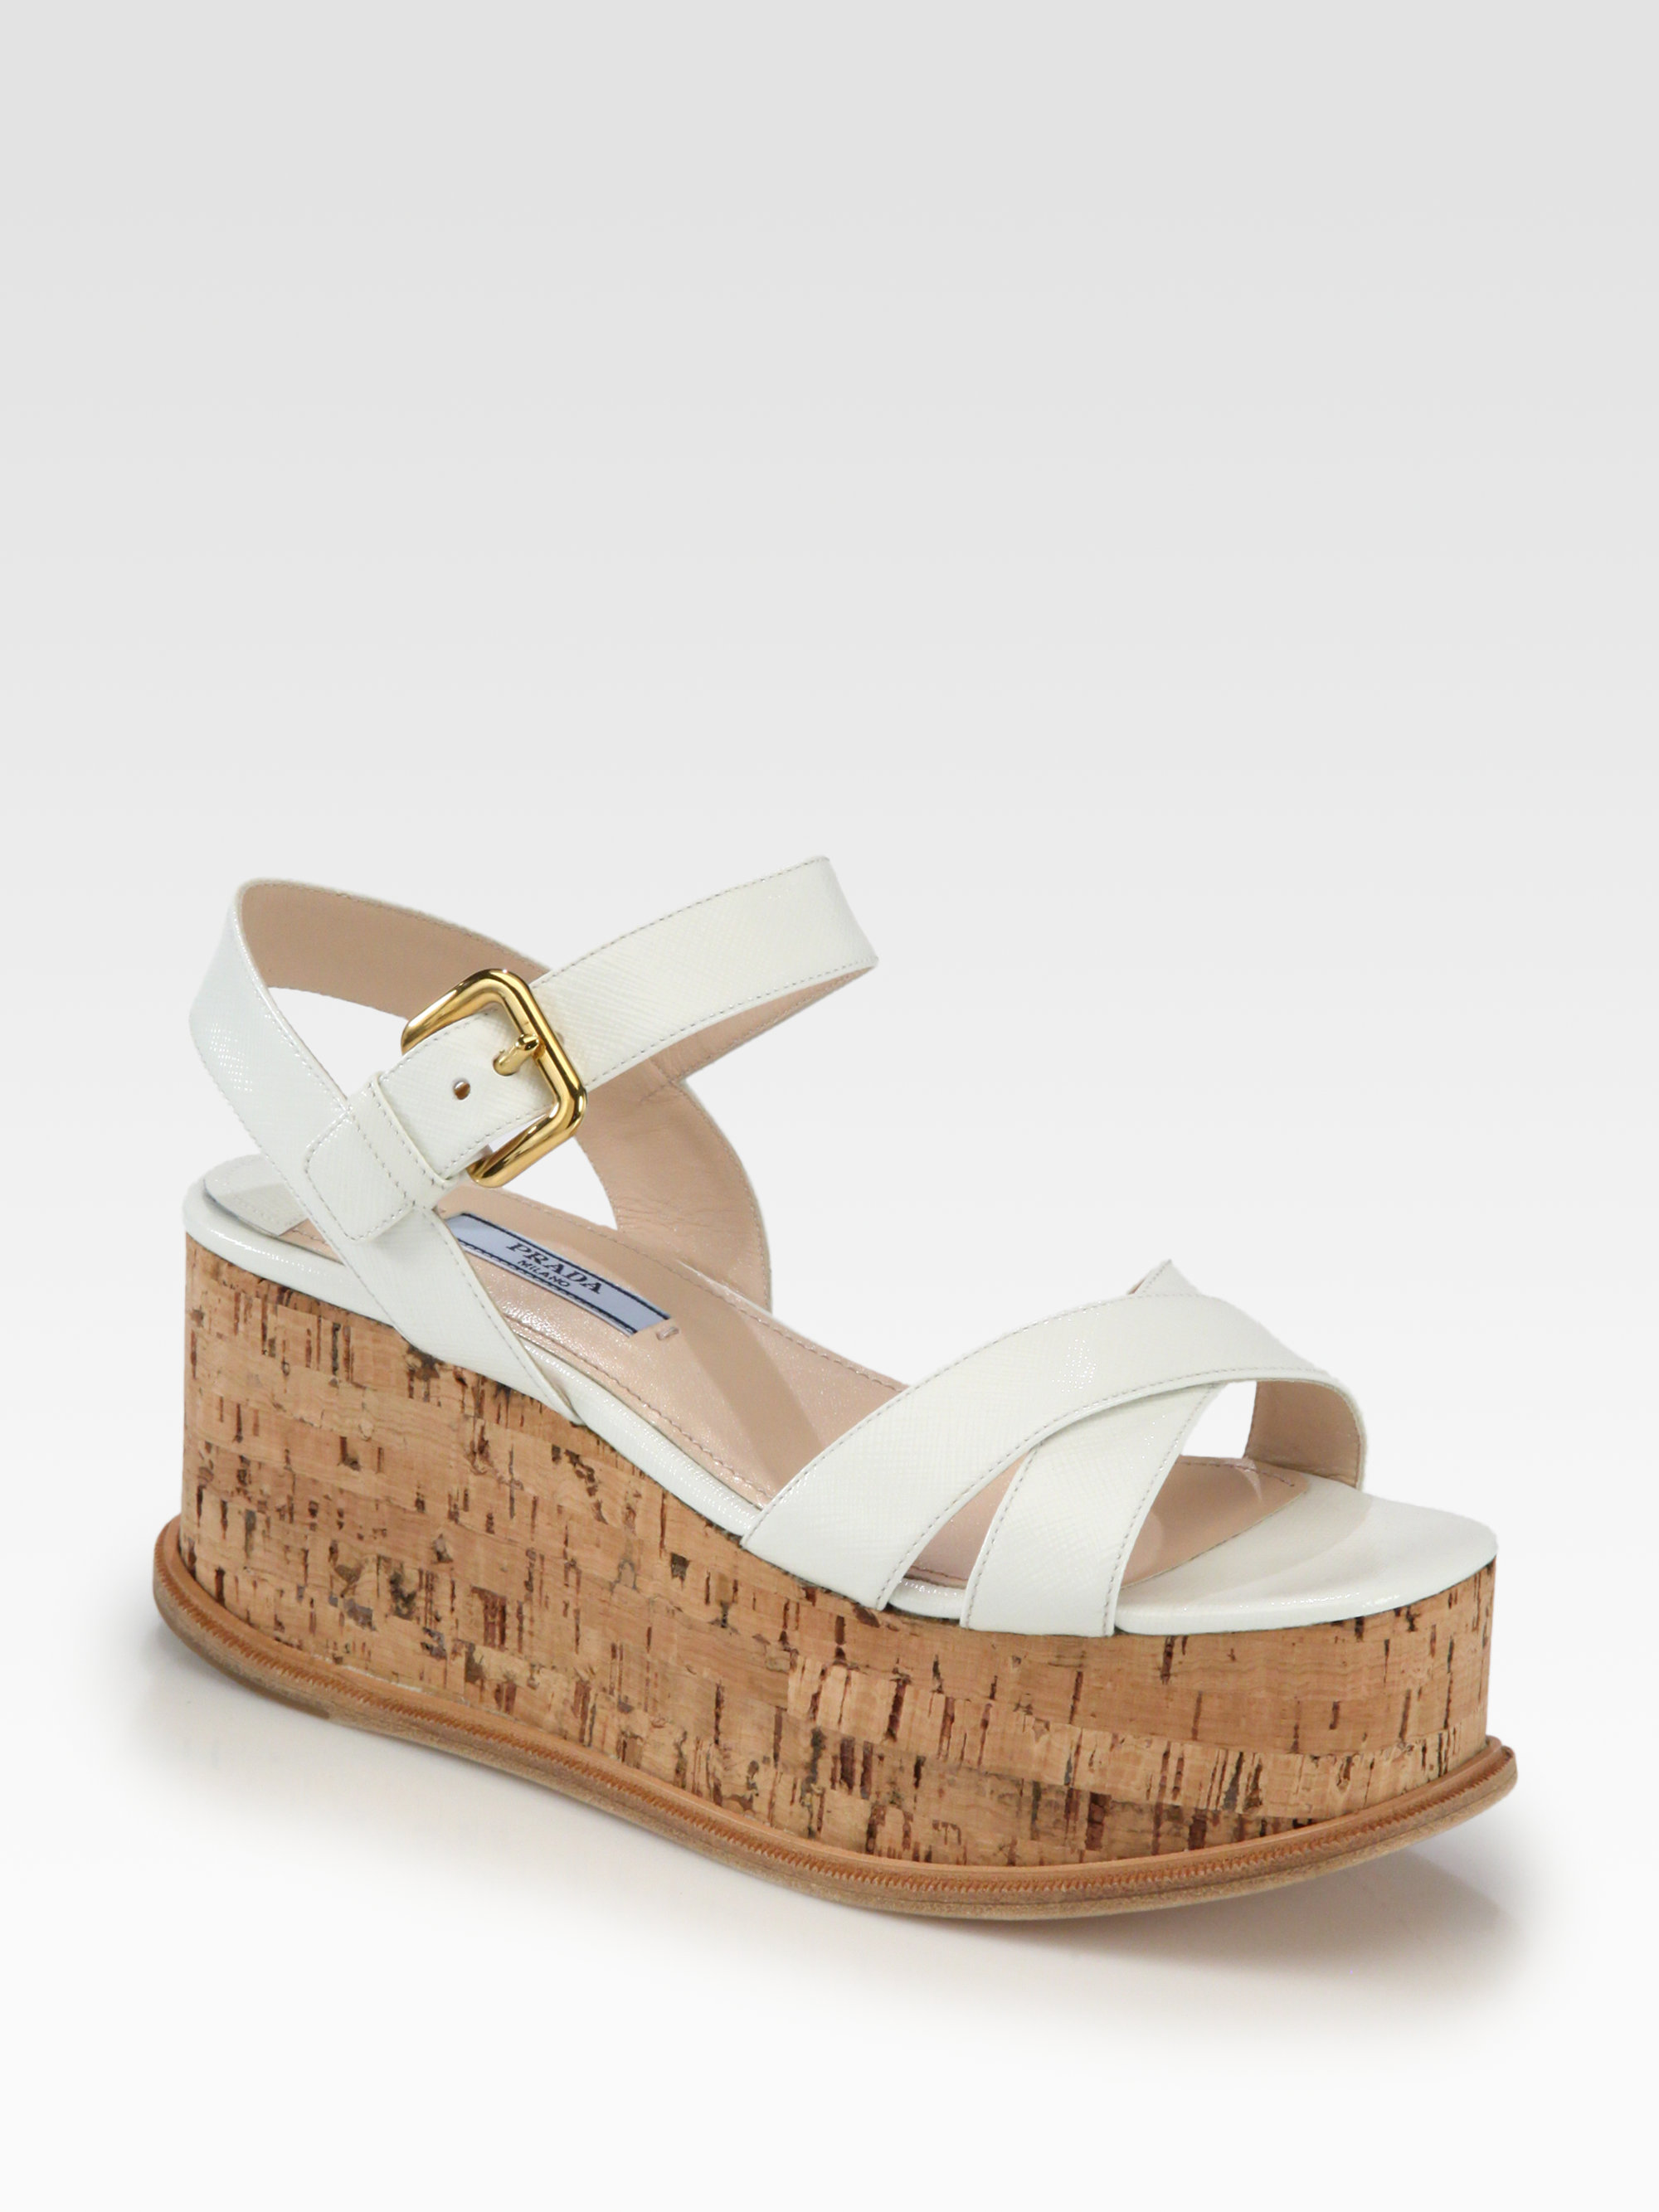 White Uzpgvmqs Cork Leather Sandals Saffiano Prada In Patent Wedge Lyst thdBrCsQx